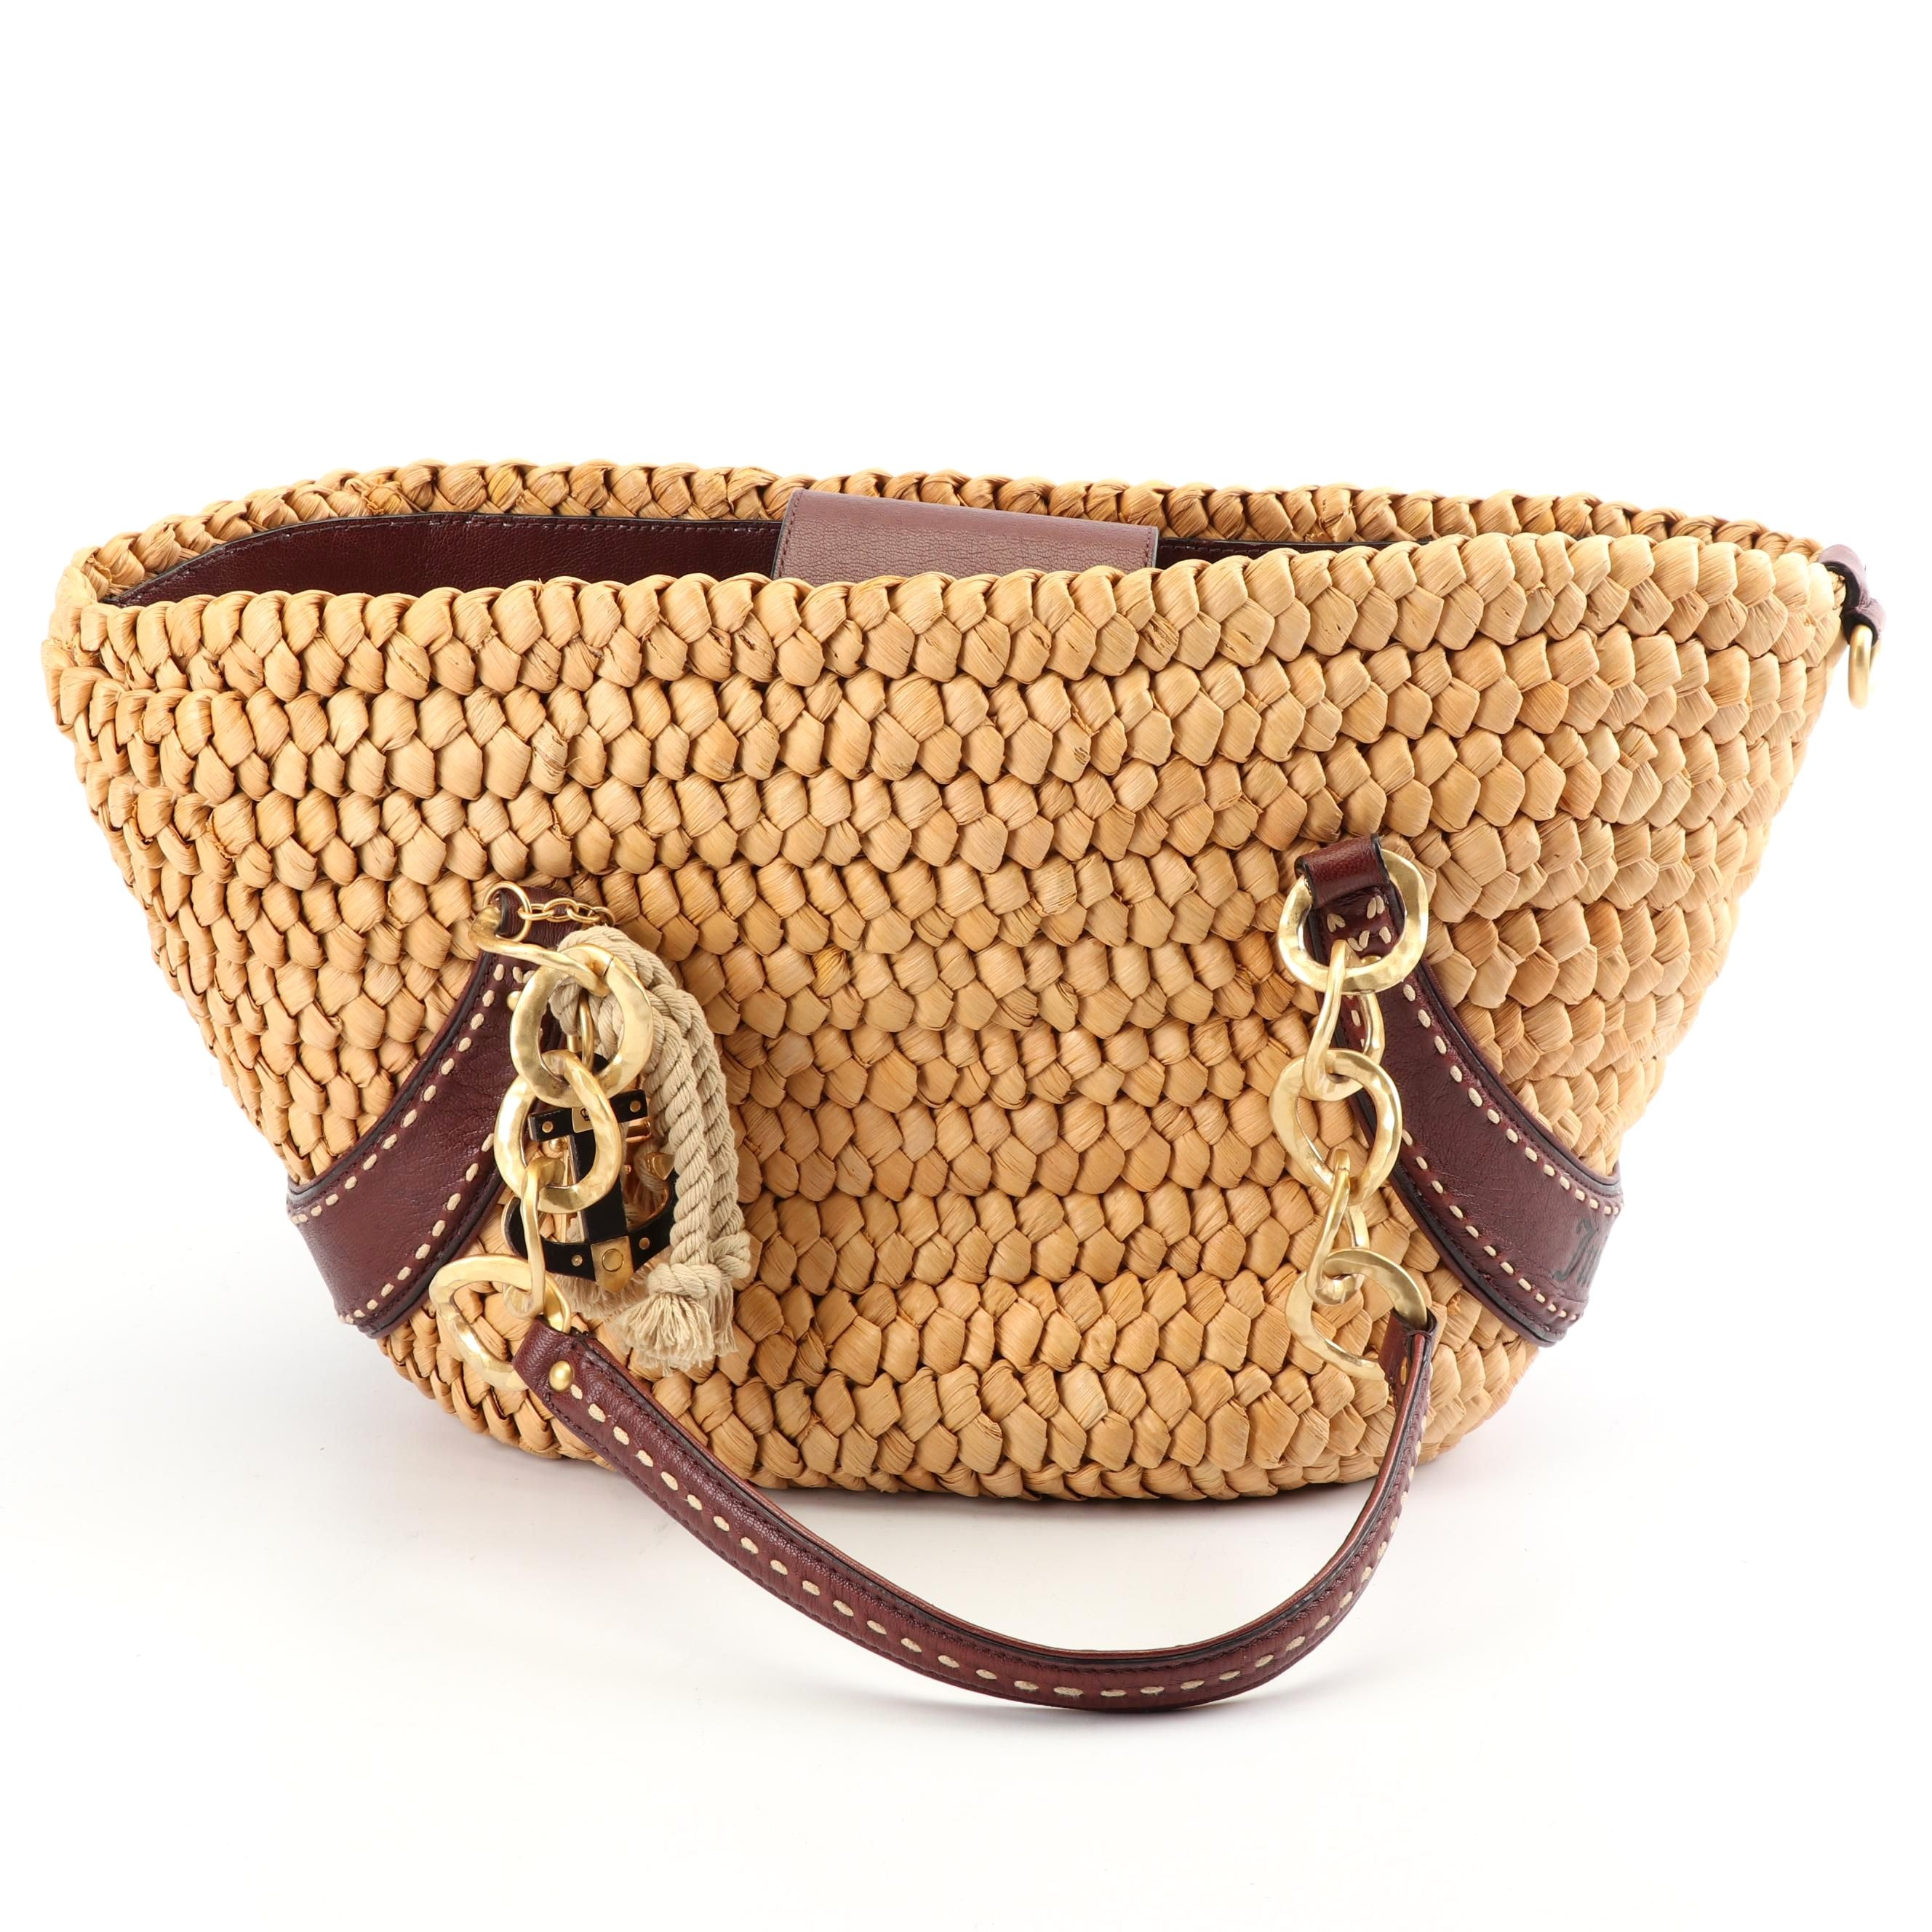 Juicy Couture Woven Corn Husk Beach Tote